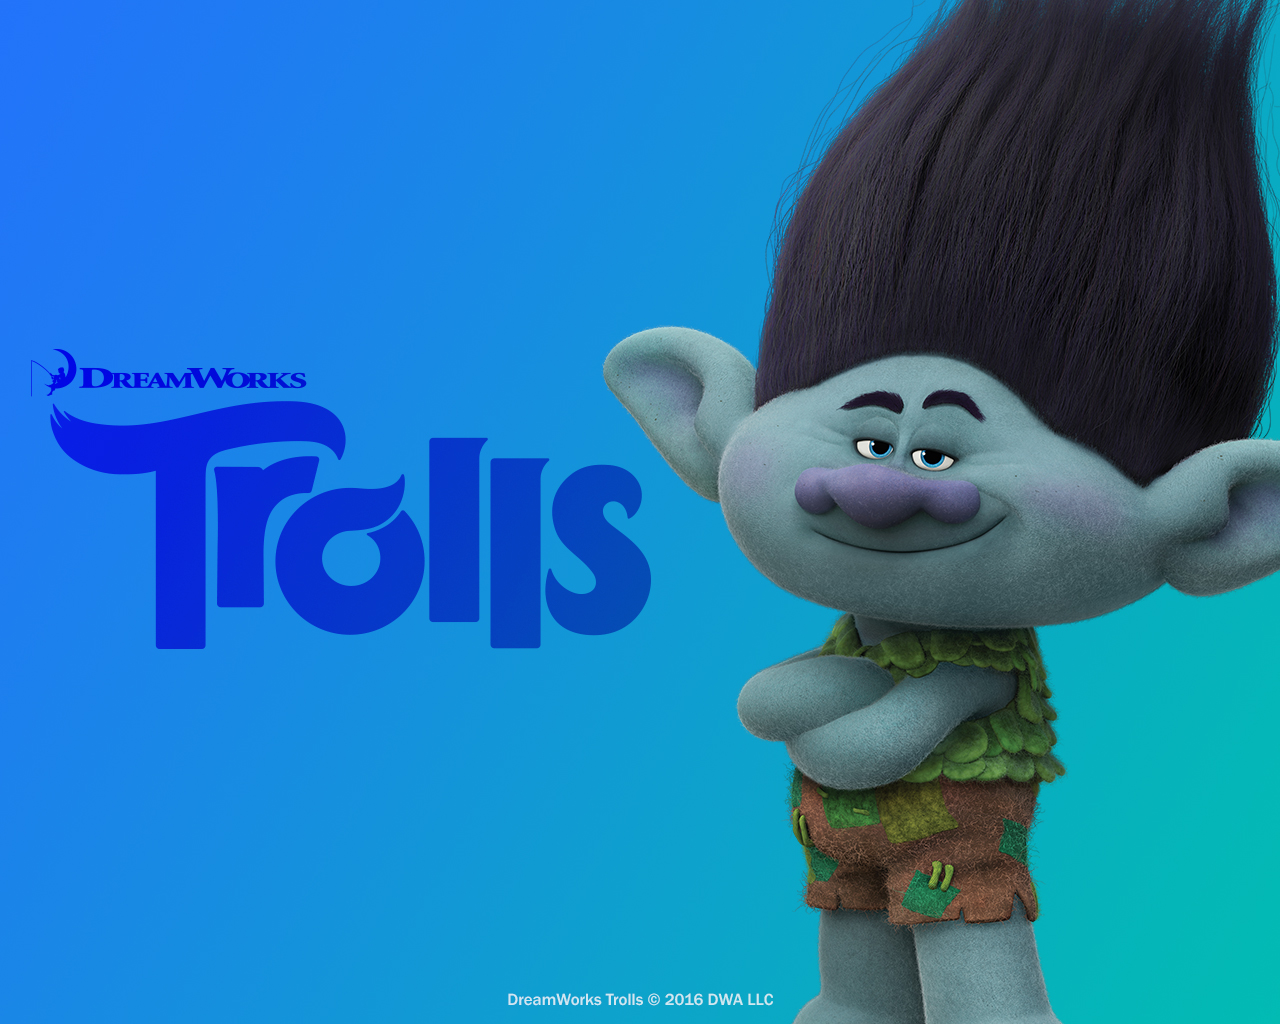 Trolls Holiday Poster >> DreamWorks Trolls images Branch HD wallpaper and background photos (40223515)